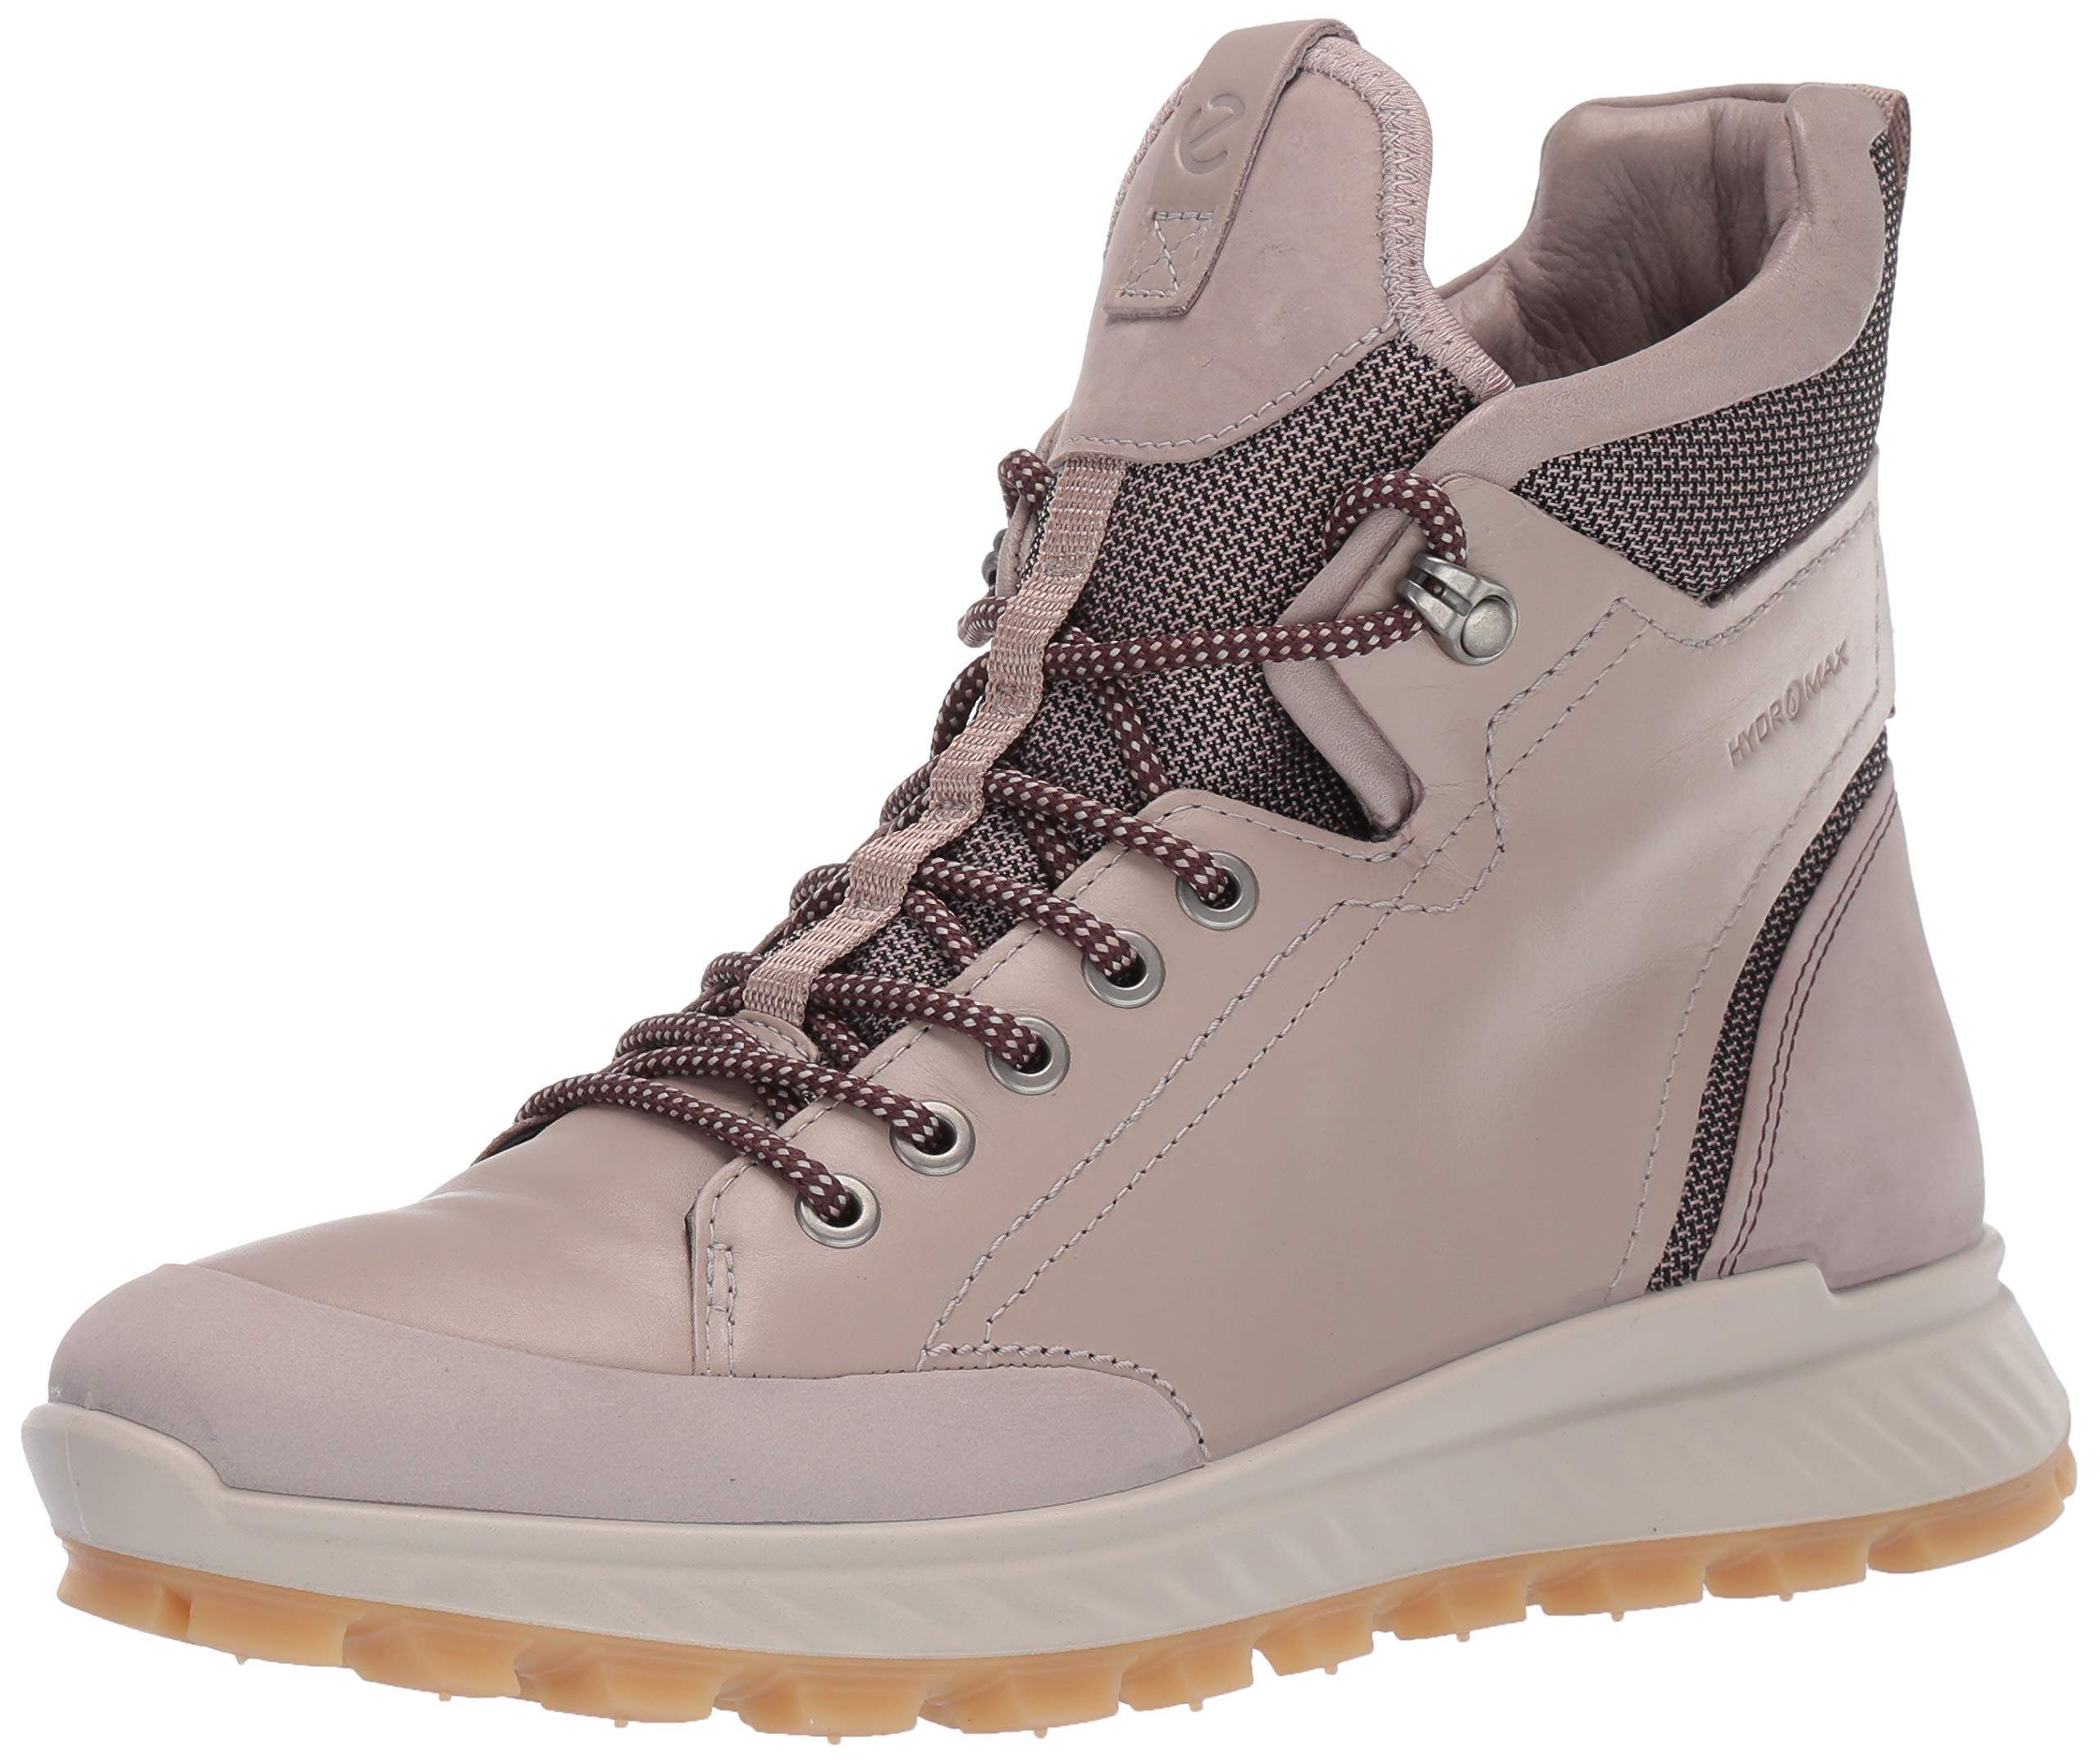 Exostrike HYDROMAX Ankle Boot - Outdoor Lifestyle, Hiking, grey rose/grey rose, 35 M EU (4-4.5 US) by ECCO